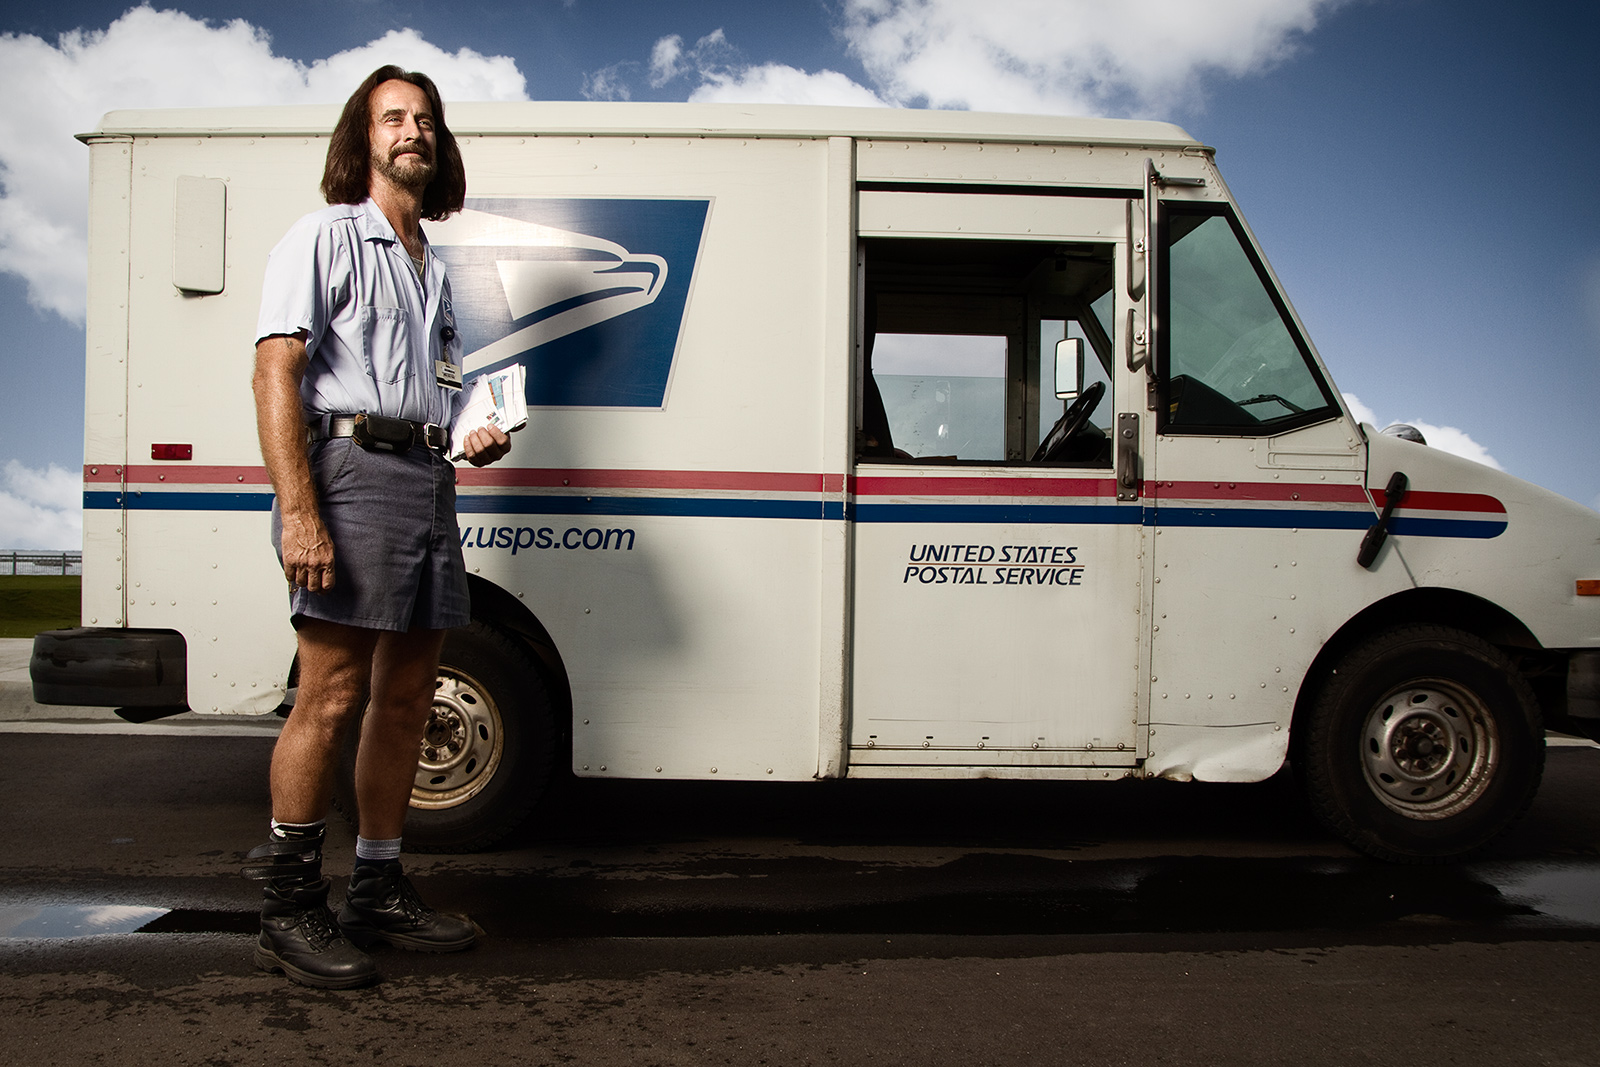 Mike the Mailman - Wide